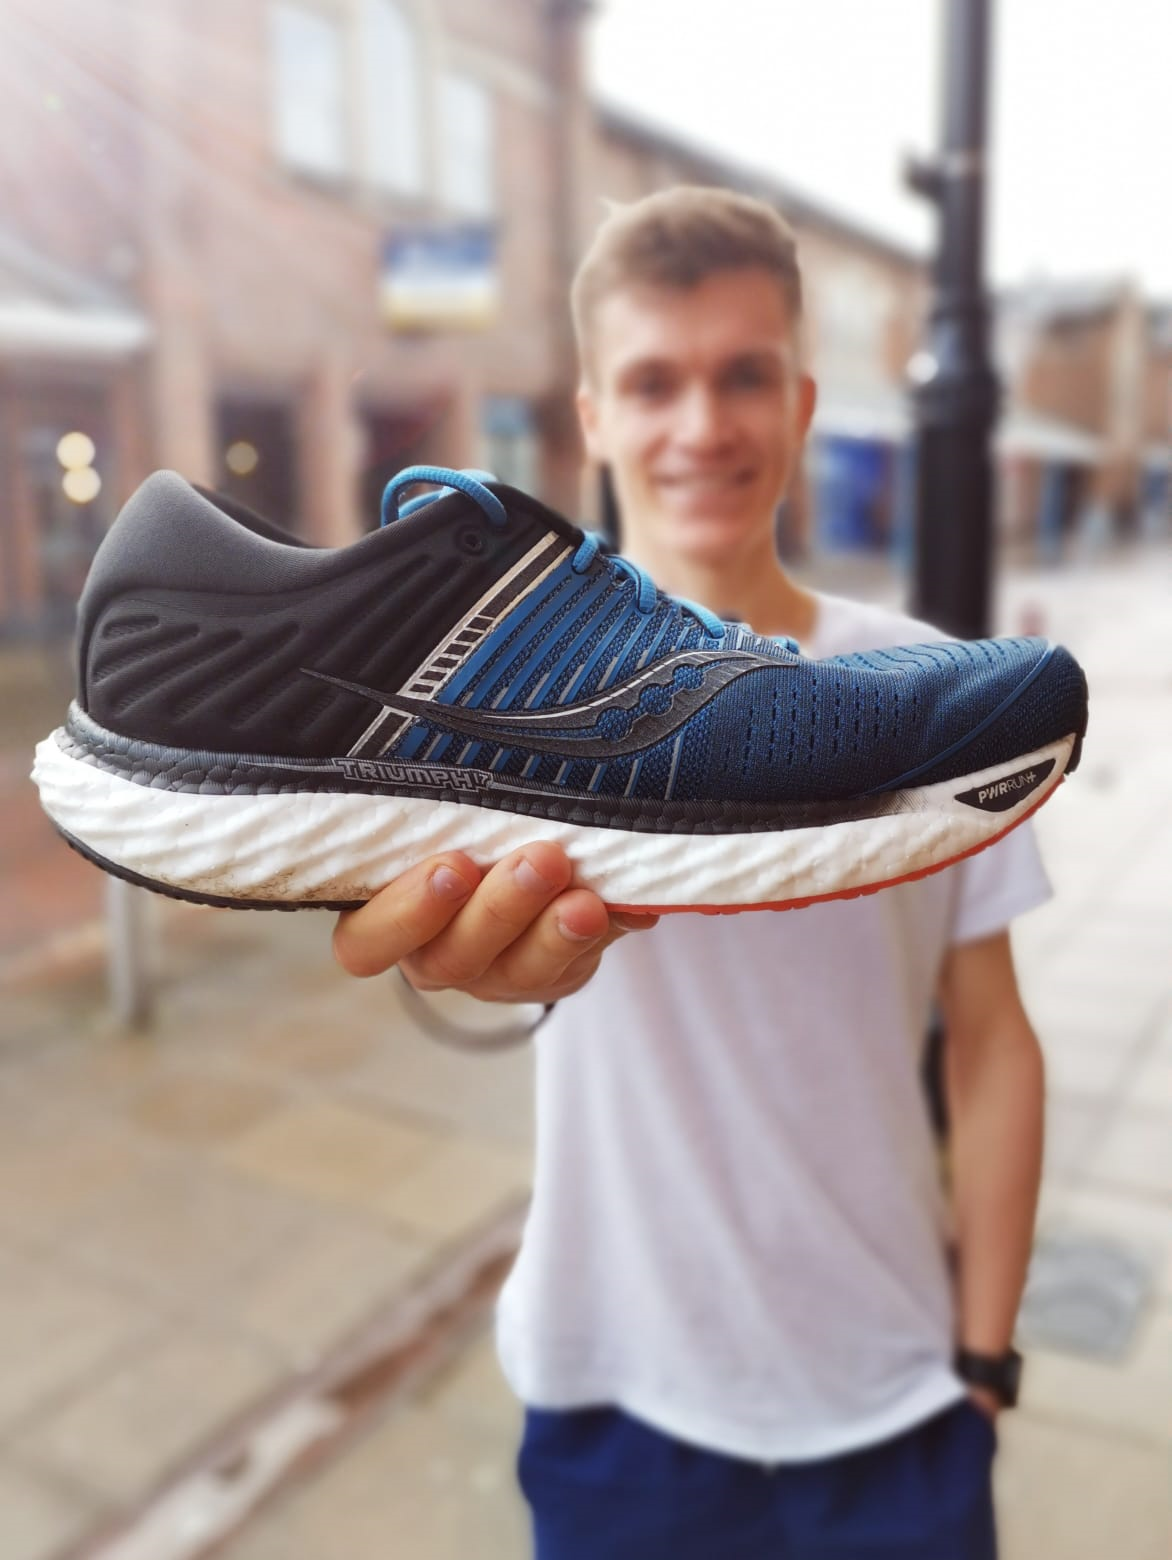 Saucony Triumph 17 review - Will Bryan